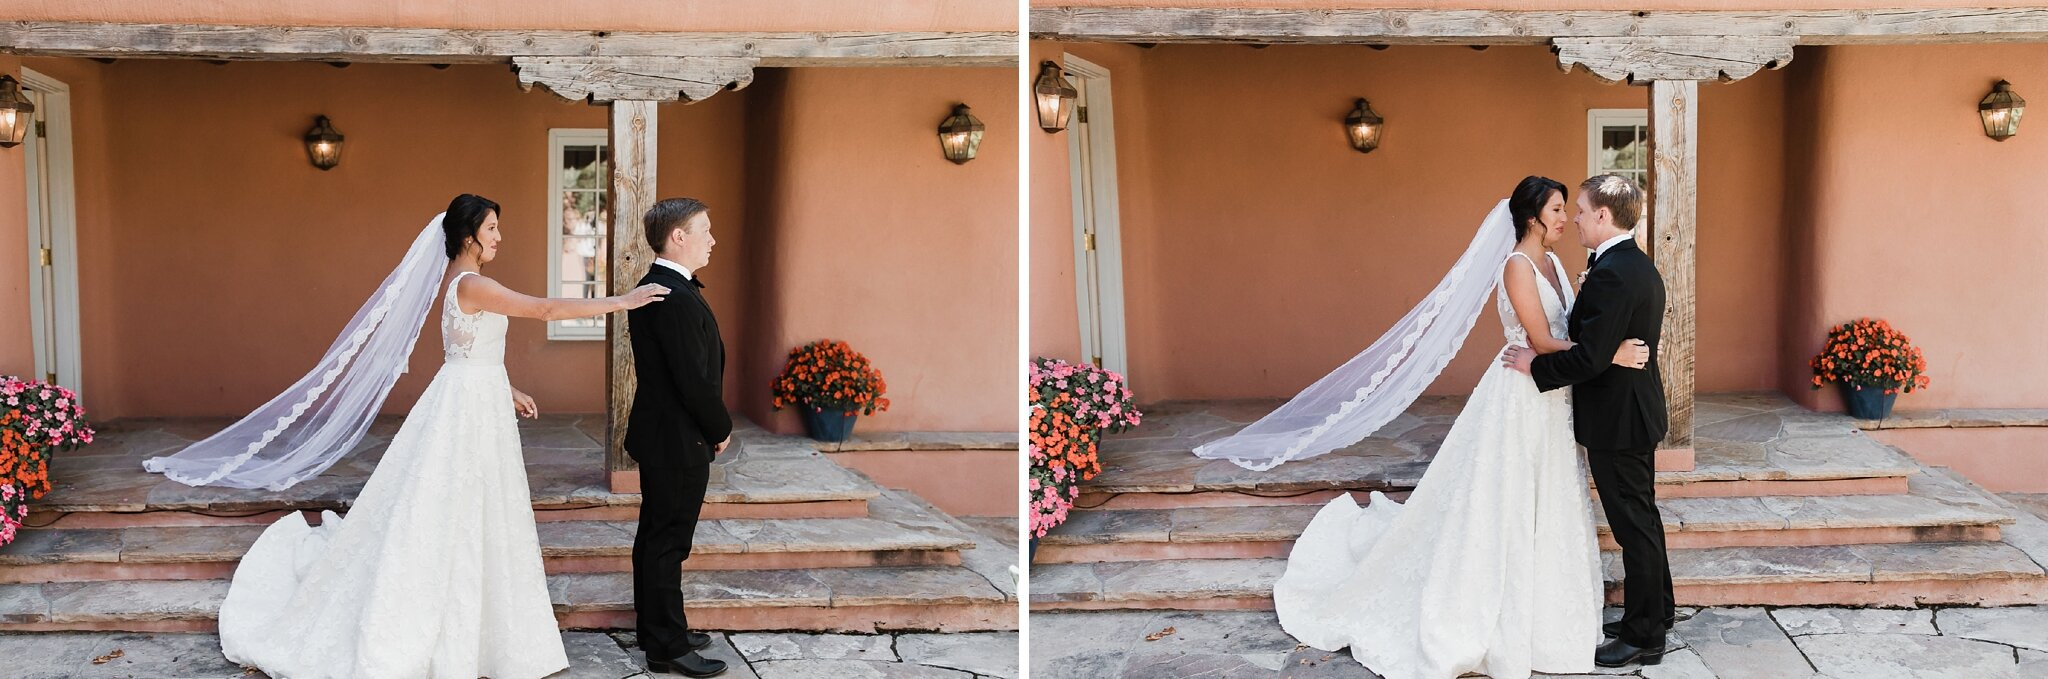 Alicia+lucia+photography+-+albuquerque+wedding+photographer+-+santa+fe+wedding+photography+-+new+mexico+wedding+photographer+-+new+mexico+wedding+-+first+look+-+wedding+first+look+-+wedding+advice+-+santa+fe+weddings_0060.jpg